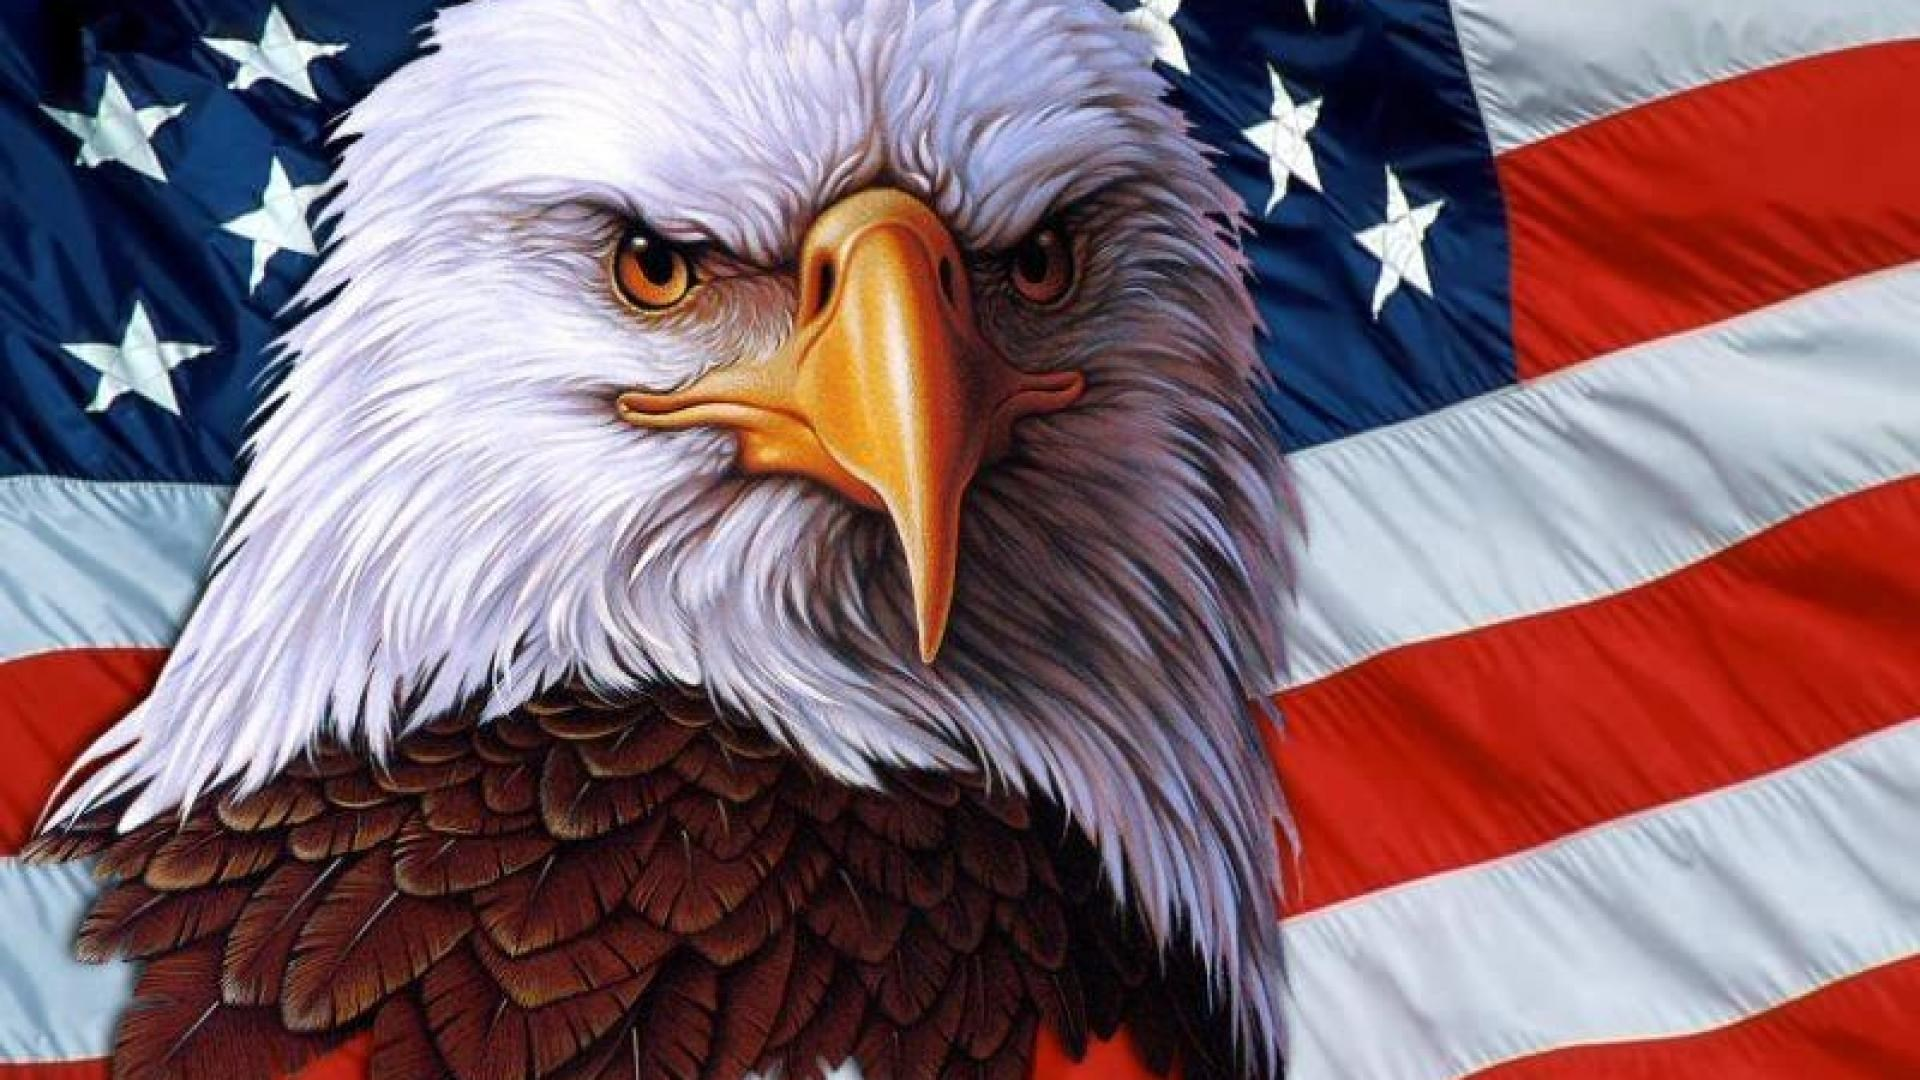 american-eagle-pic-free-for-desktop-Bronson-Archibald-1920-x-1080-wallpaper-wp3602424